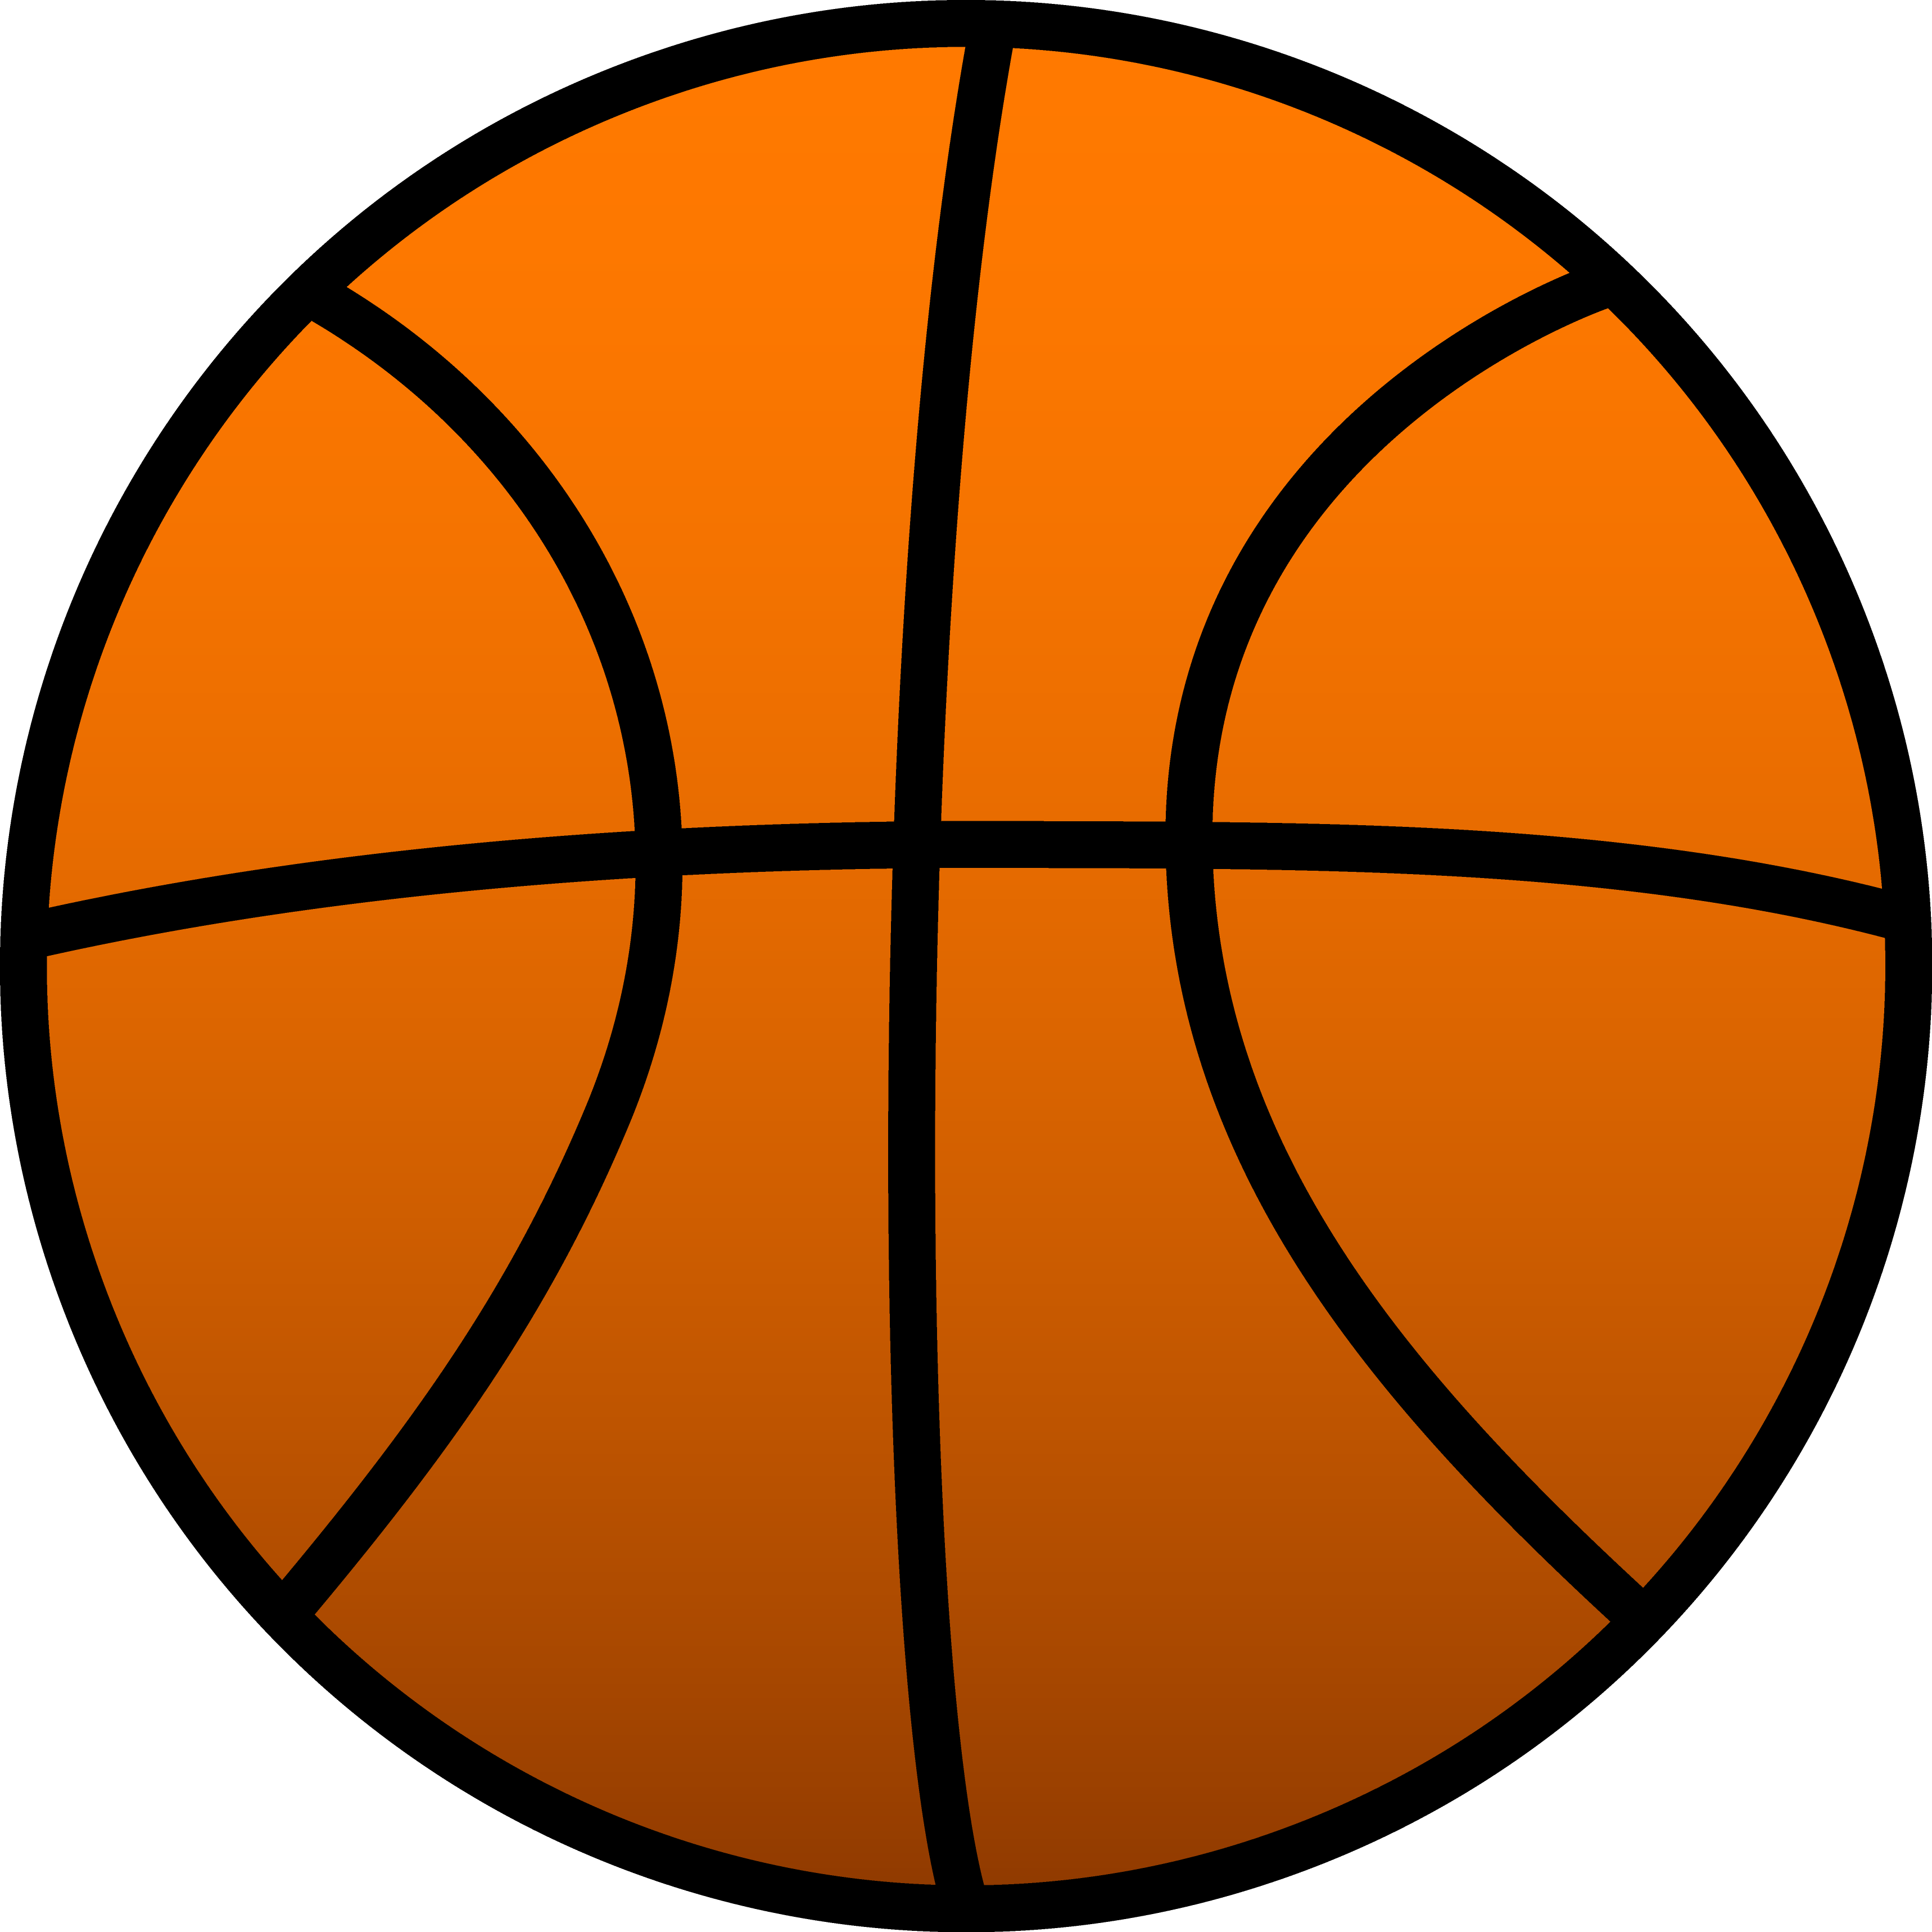 Cartoon basketball clipart clipart free stock PGH Elite Hoops (@PGHEliteHoops) | Twitter clipart free stock